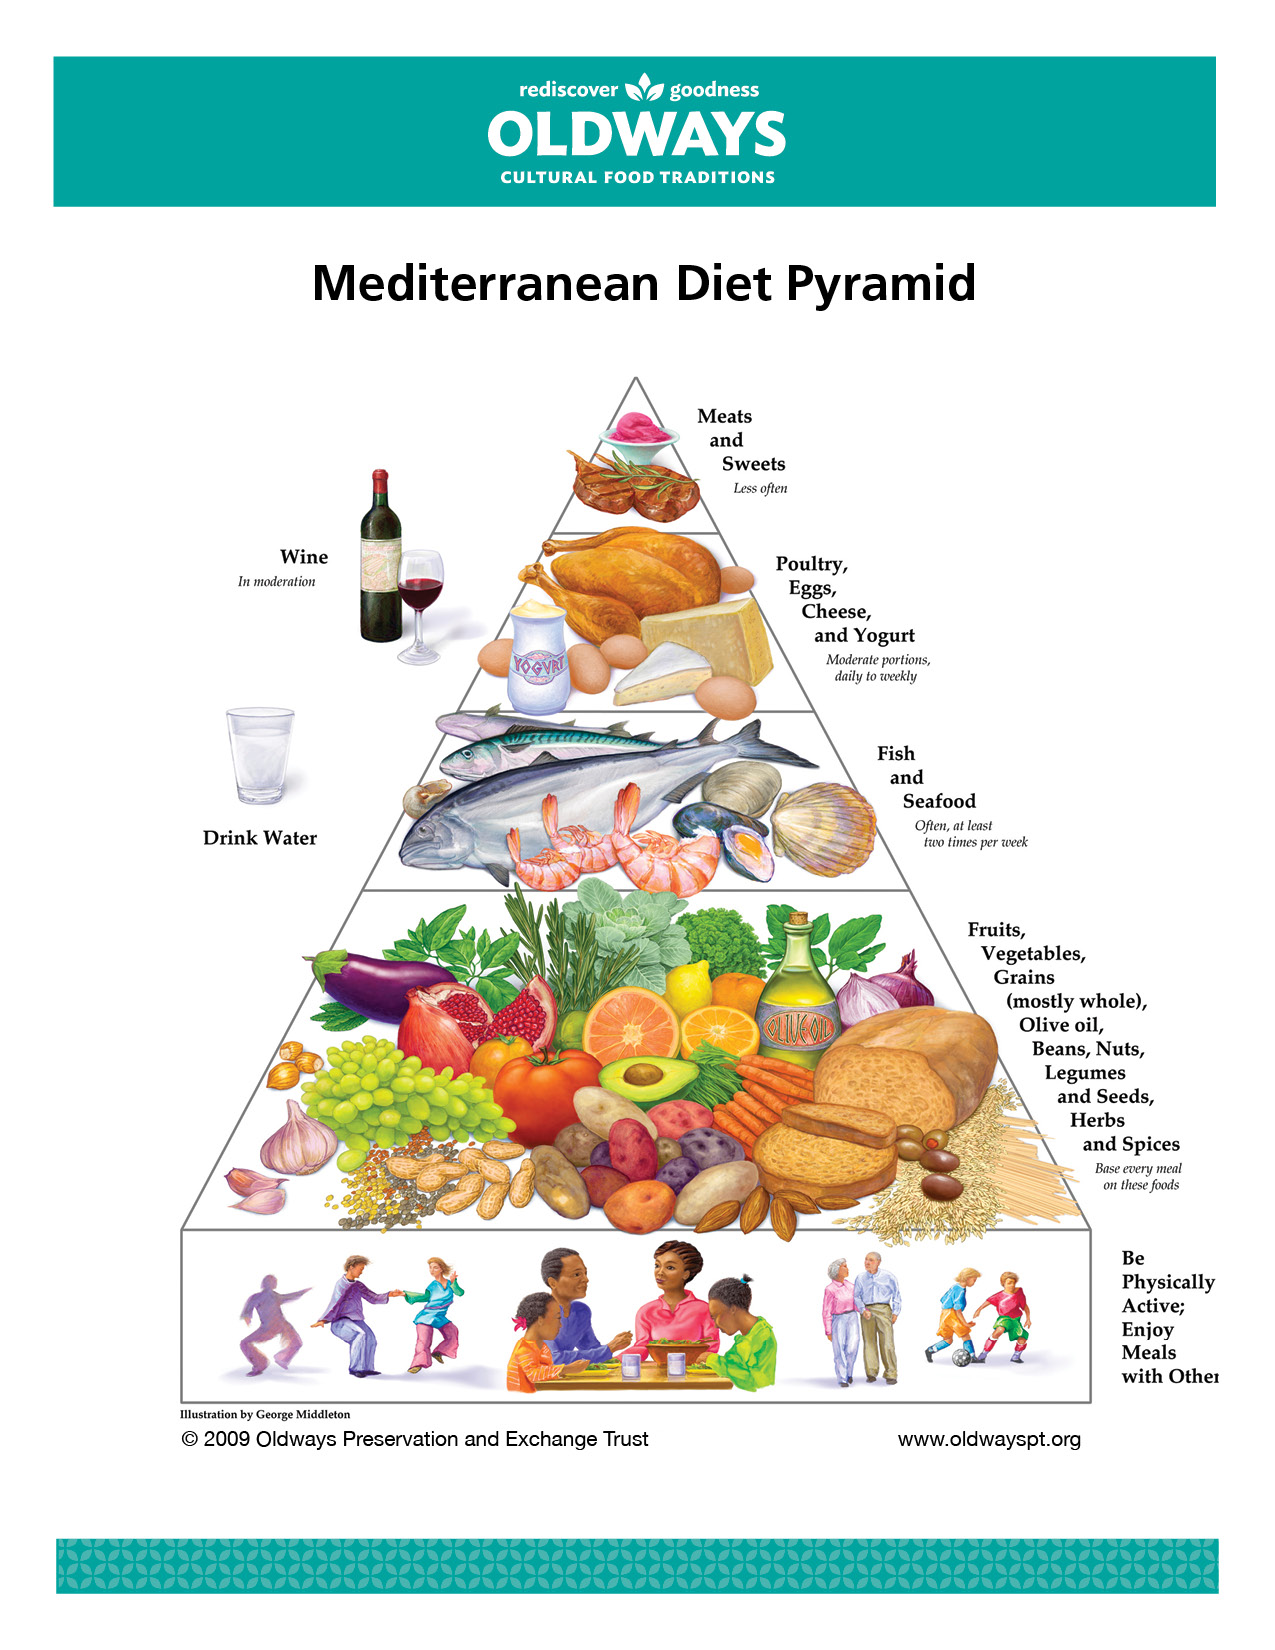 who founded the mediterranean diet